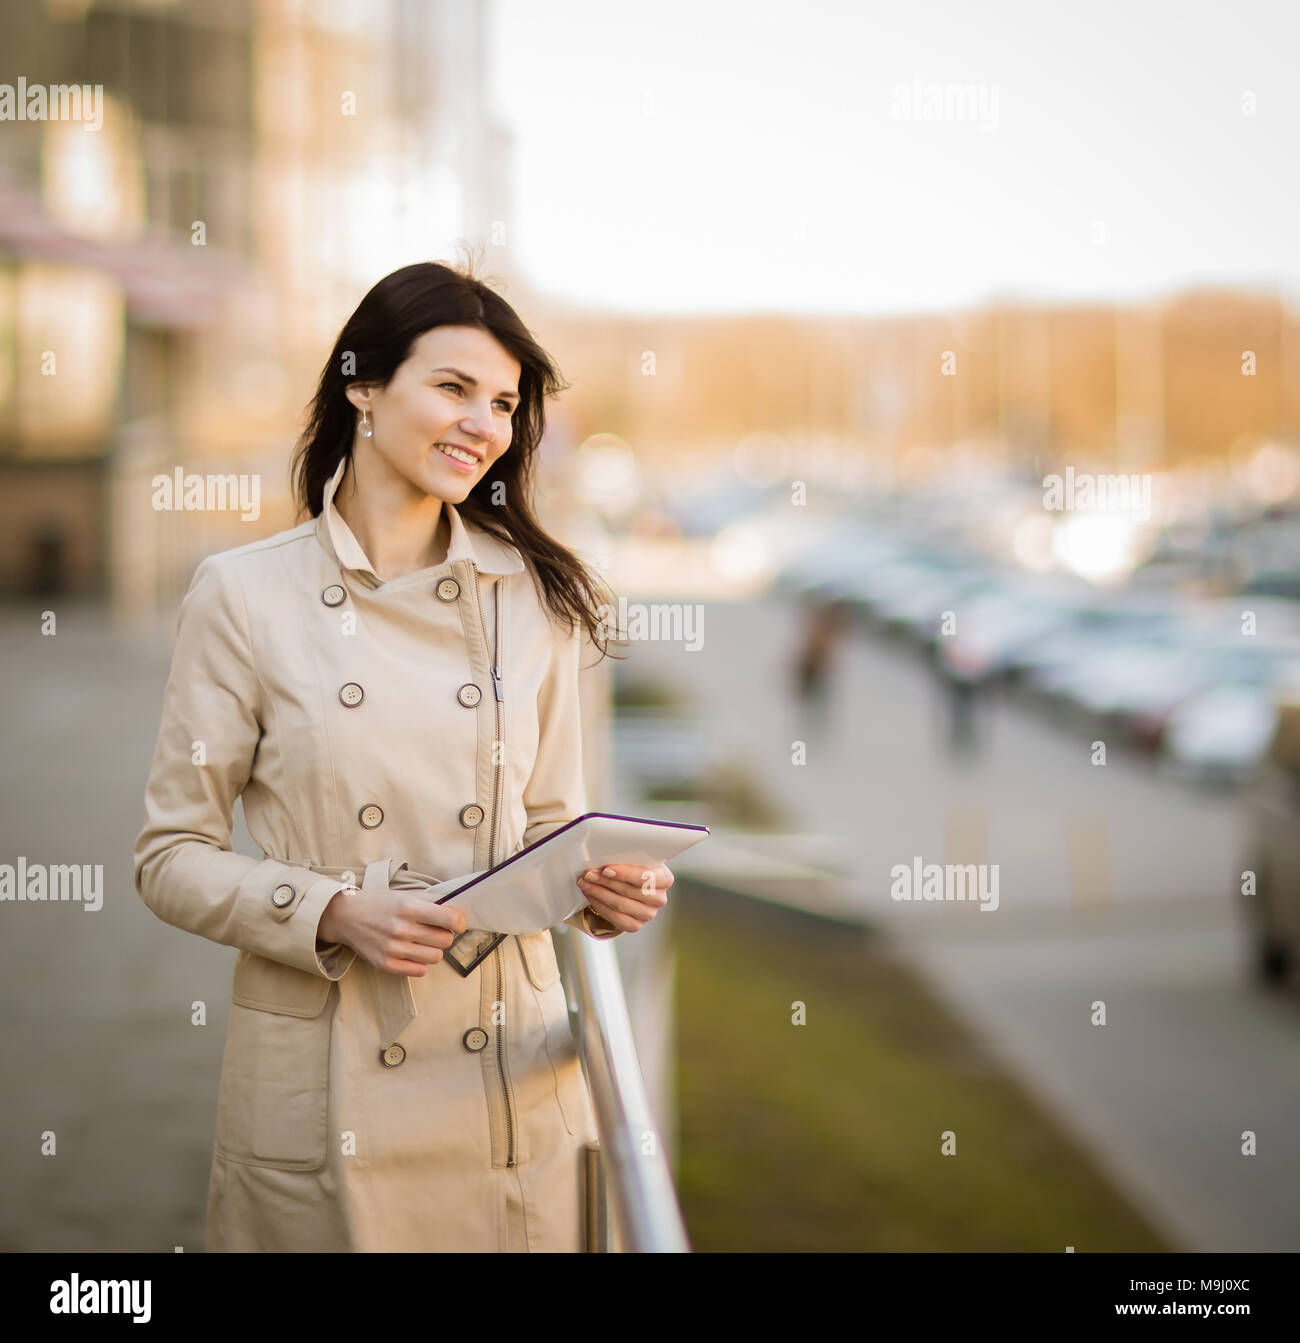 Modern business woman working on a digital tablet, standing next to an office building - Stock Image